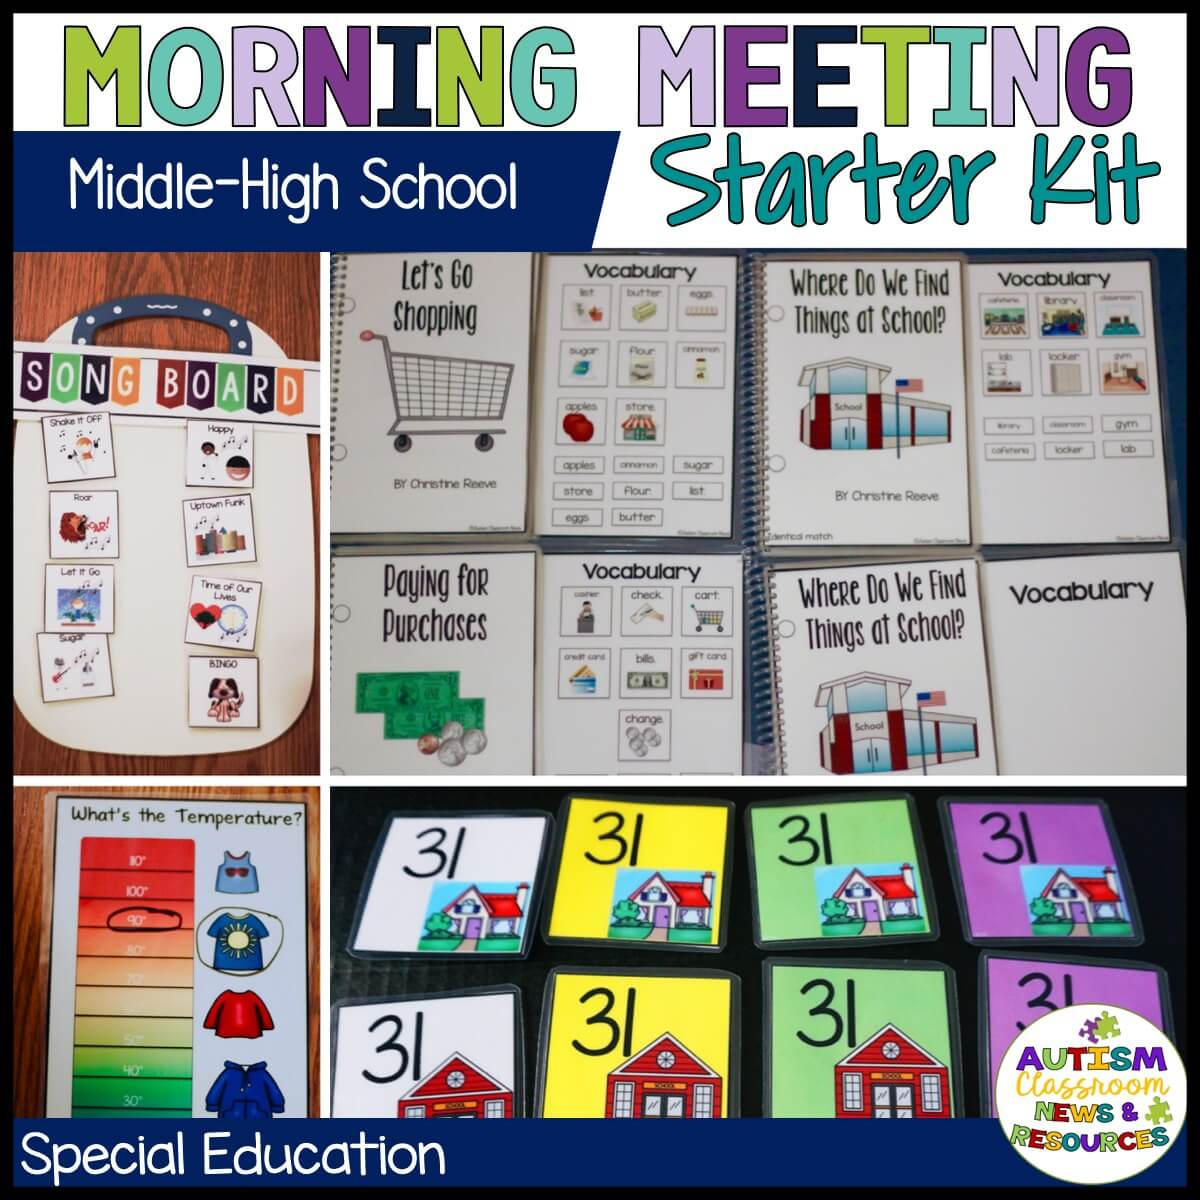 Morning meeting should be just as engaging in middle and high school special education classrooms as it is in elementary and preschool classes. But finding age-appropriate activities can be tough for older students. This kit will get you started.